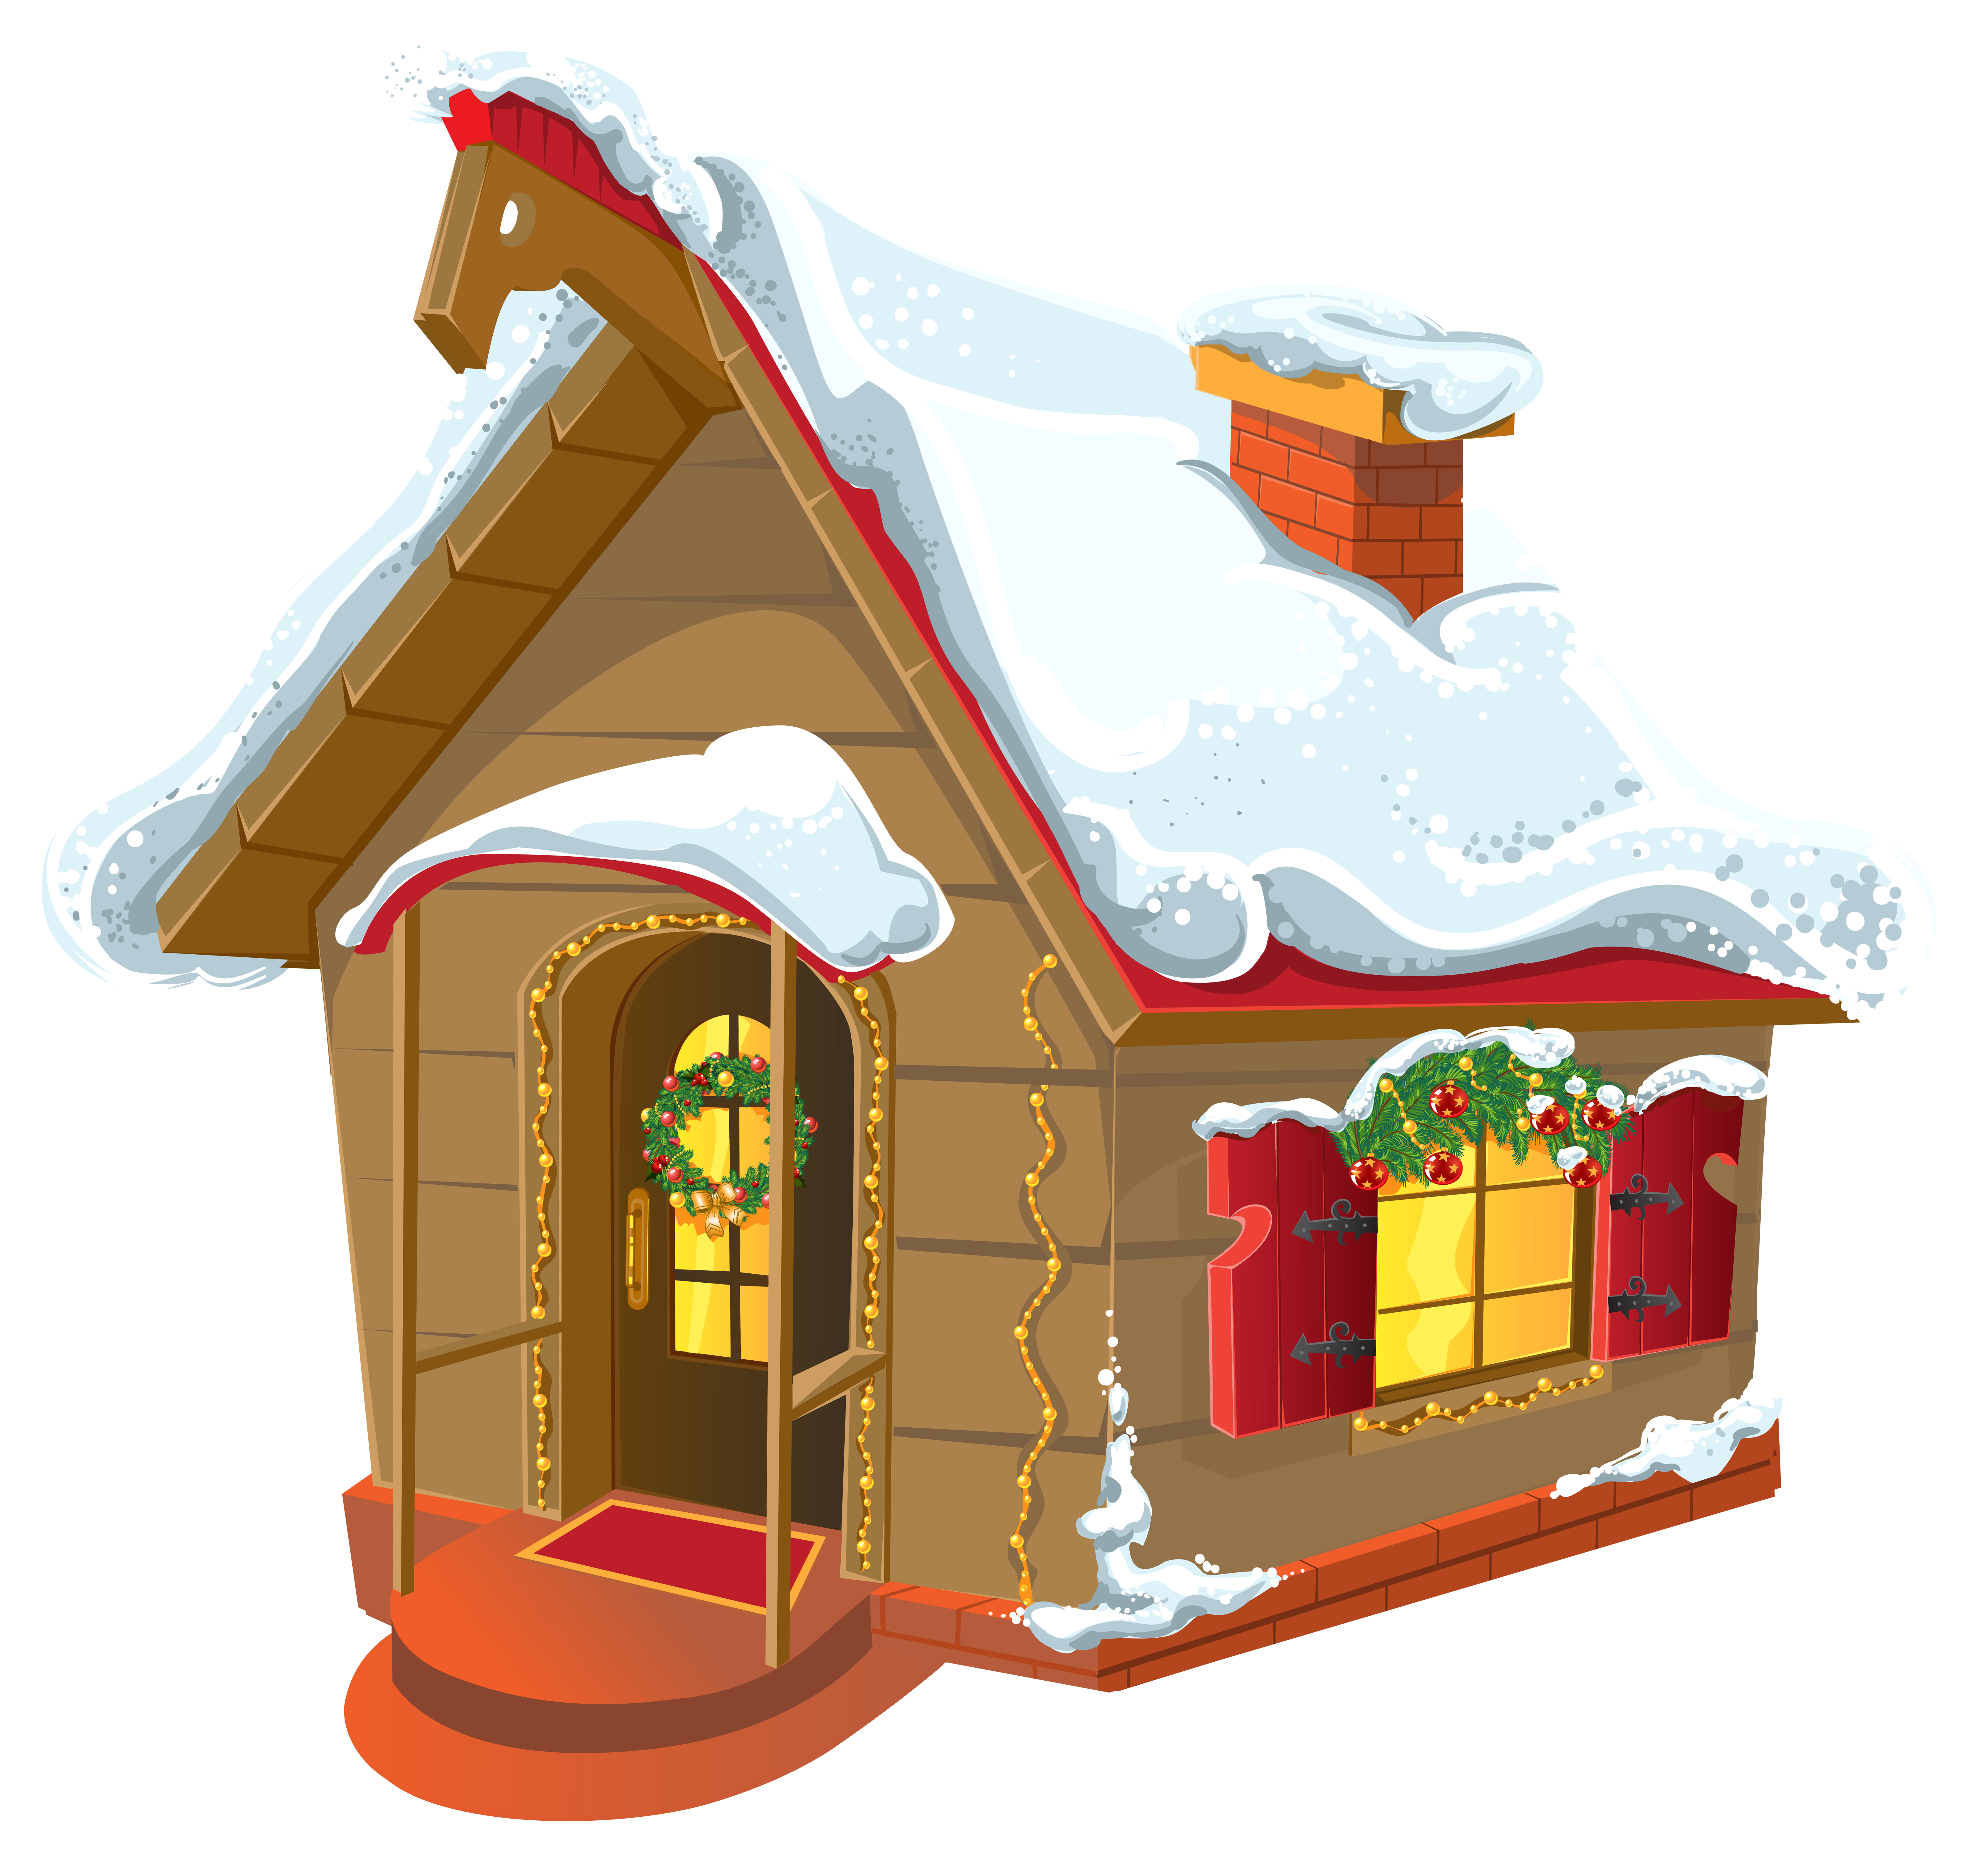 Christmas cottage clipart banner stock Christmas cabin clipart clipart images gallery for free download ... banner stock